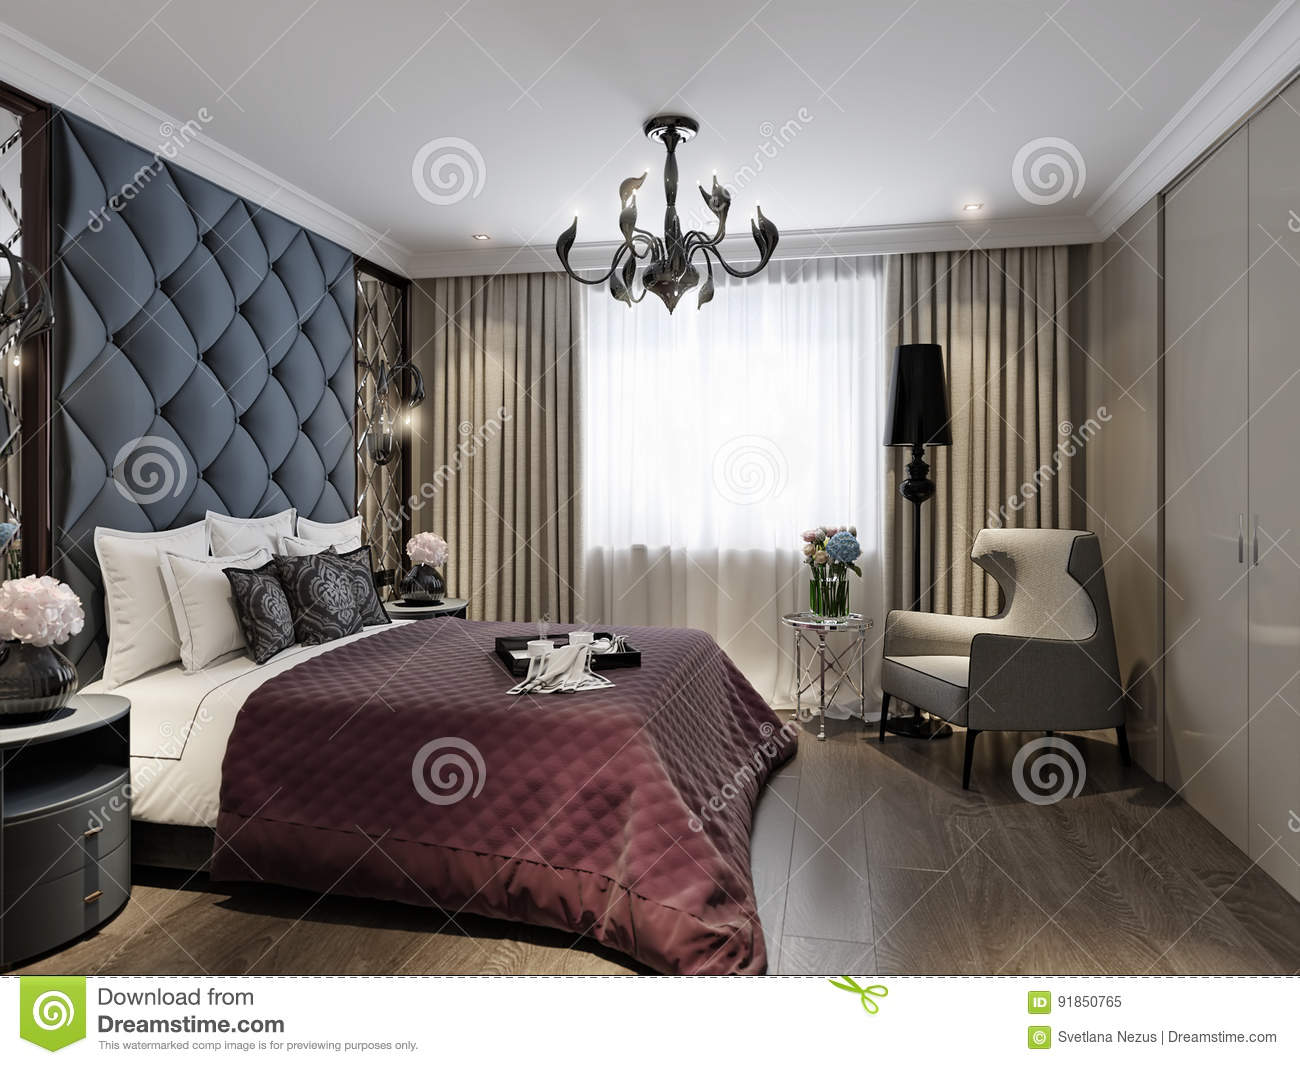 art deco bedroom interior design classique moderne illustration stock illustration du home. Black Bedroom Furniture Sets. Home Design Ideas